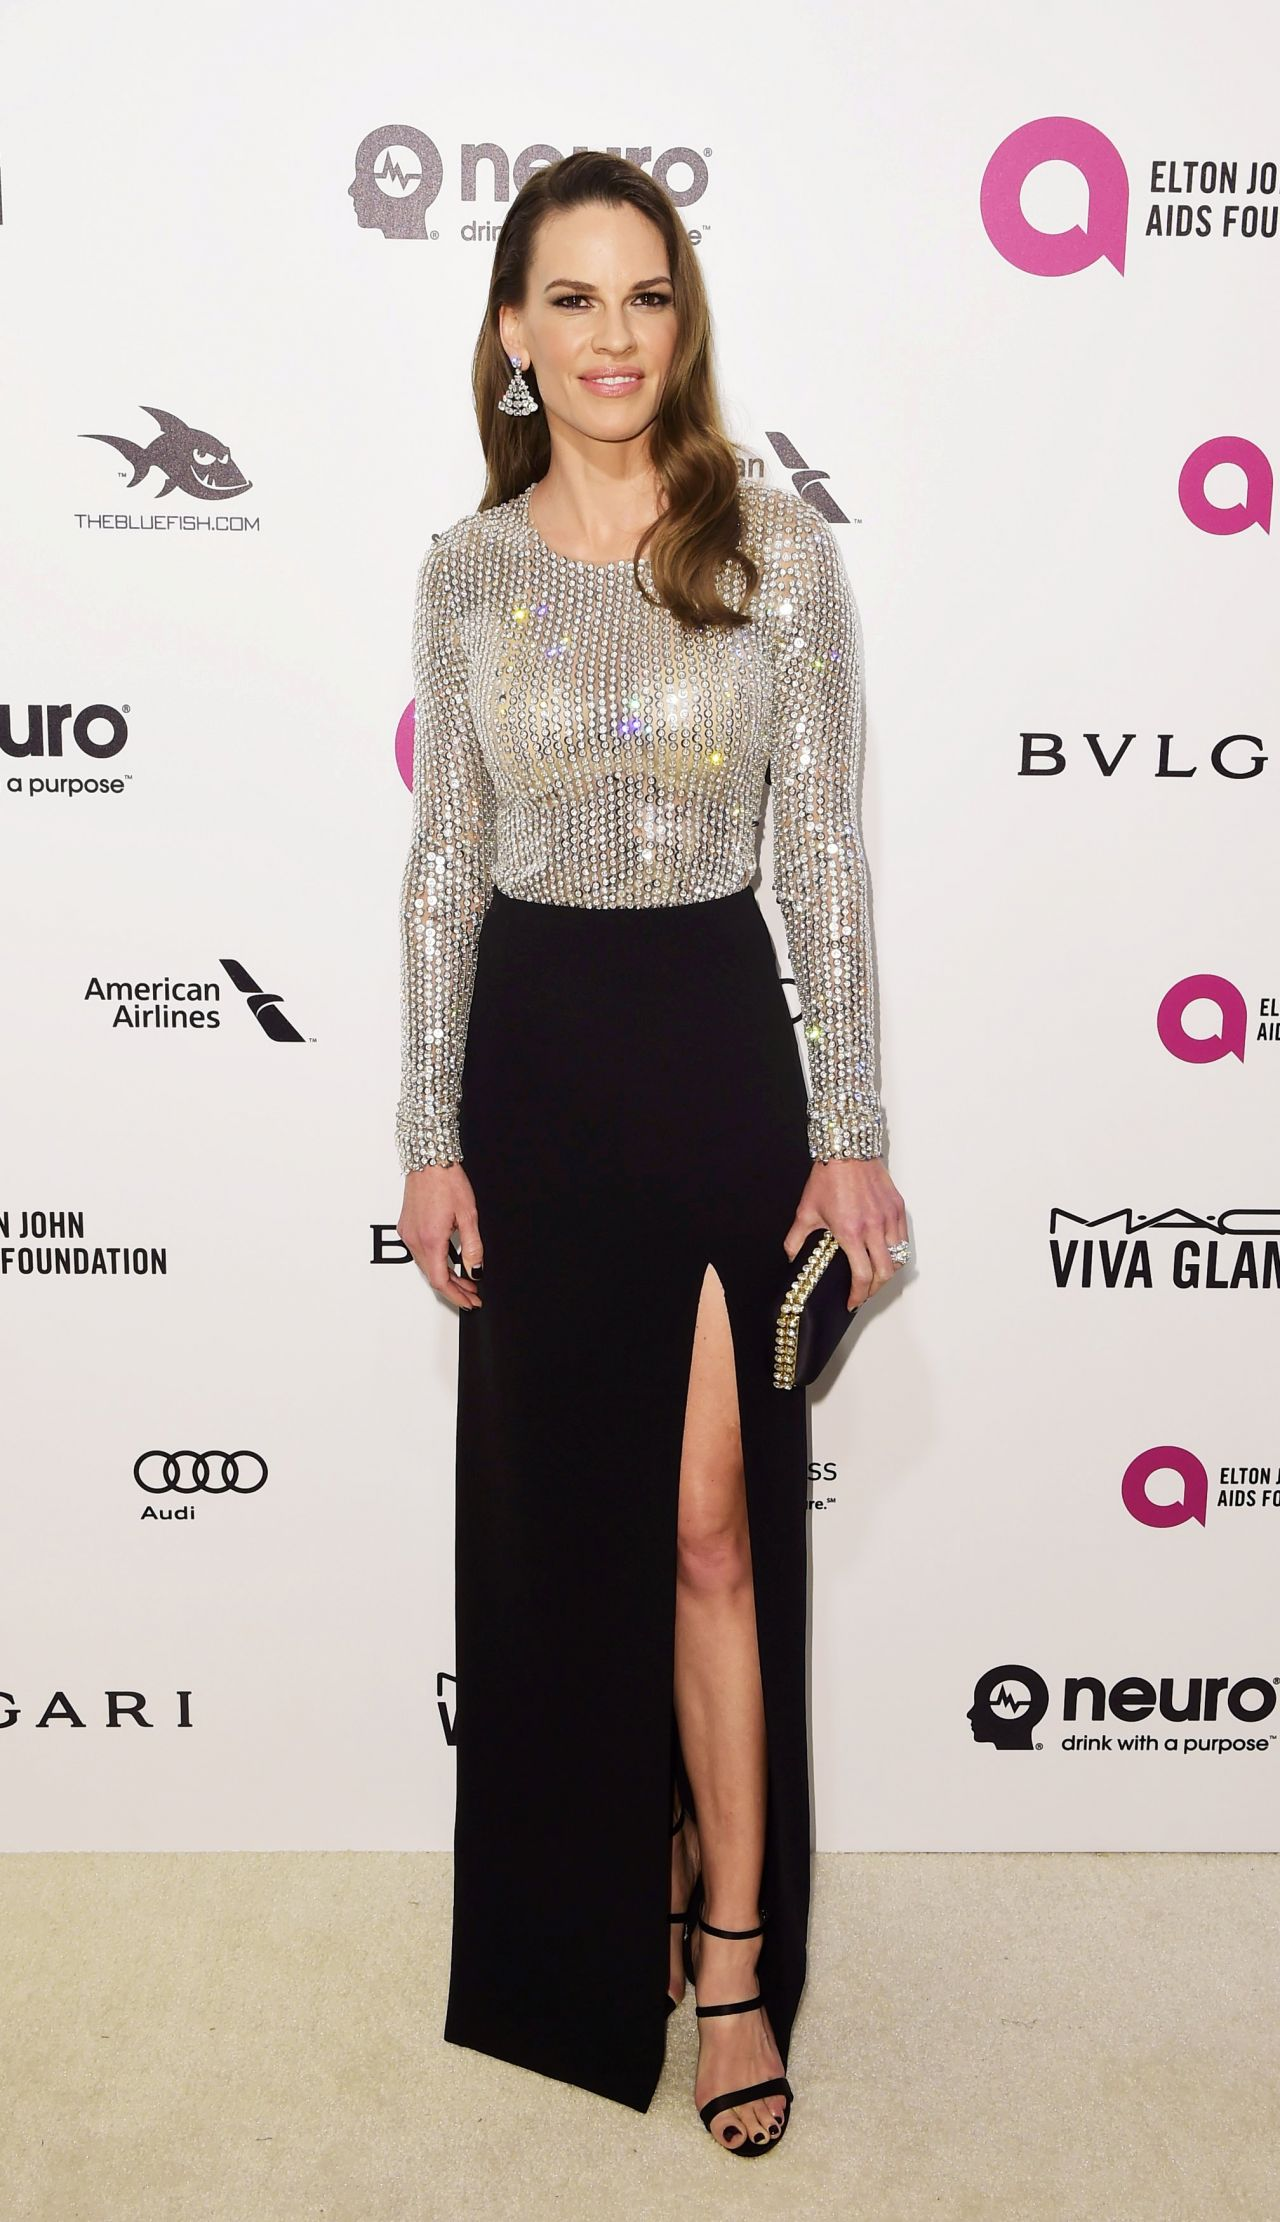 hillary-swank-2016-elton-john-aids-foundation-s-oscar-viewing-party-in-west-hollywood-ca-2